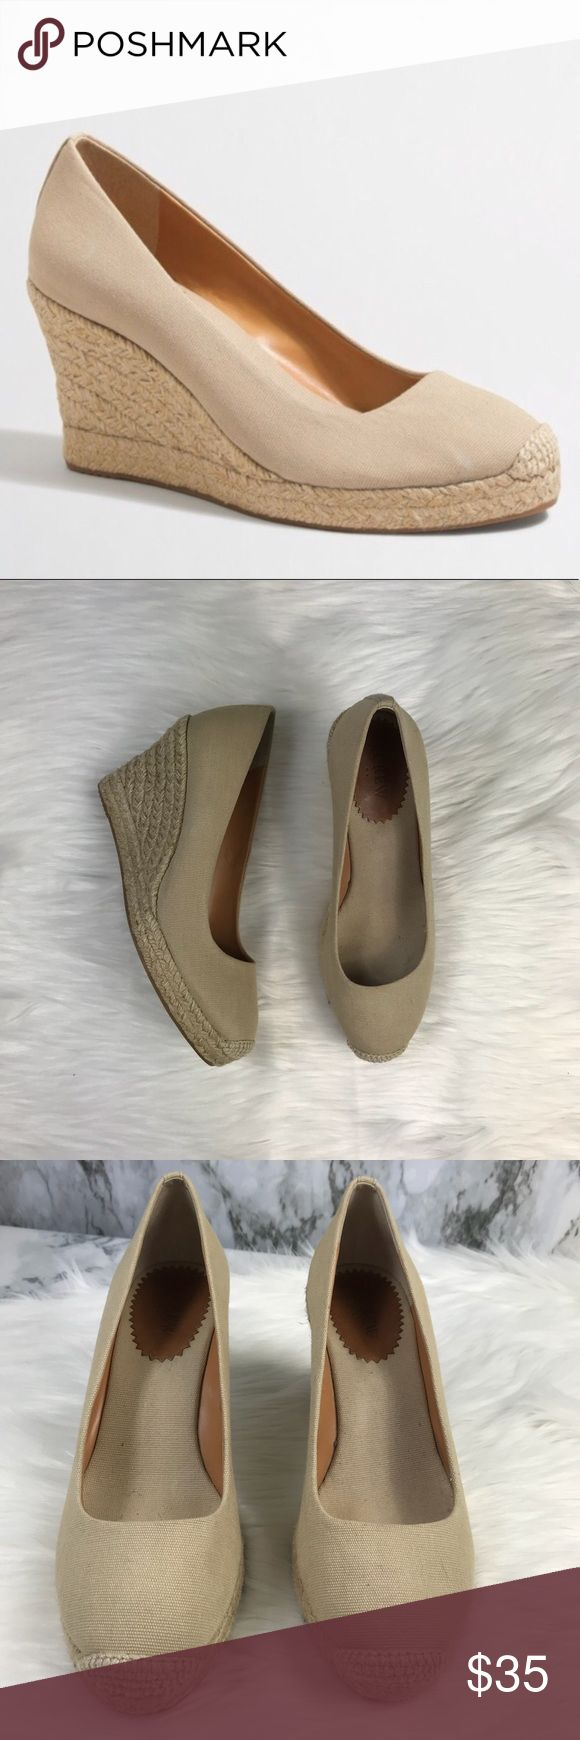 J.Crew Factory | Canvas Espadrilles Wedges These wedges are in great condition! They are pre owned but they were hardly worn. So cute and can be paired with anything! 3.34in. Heel. Rubber sole. Canvas upper.💕SB1 Size 9 J.Crew Factory Shoes Wedges